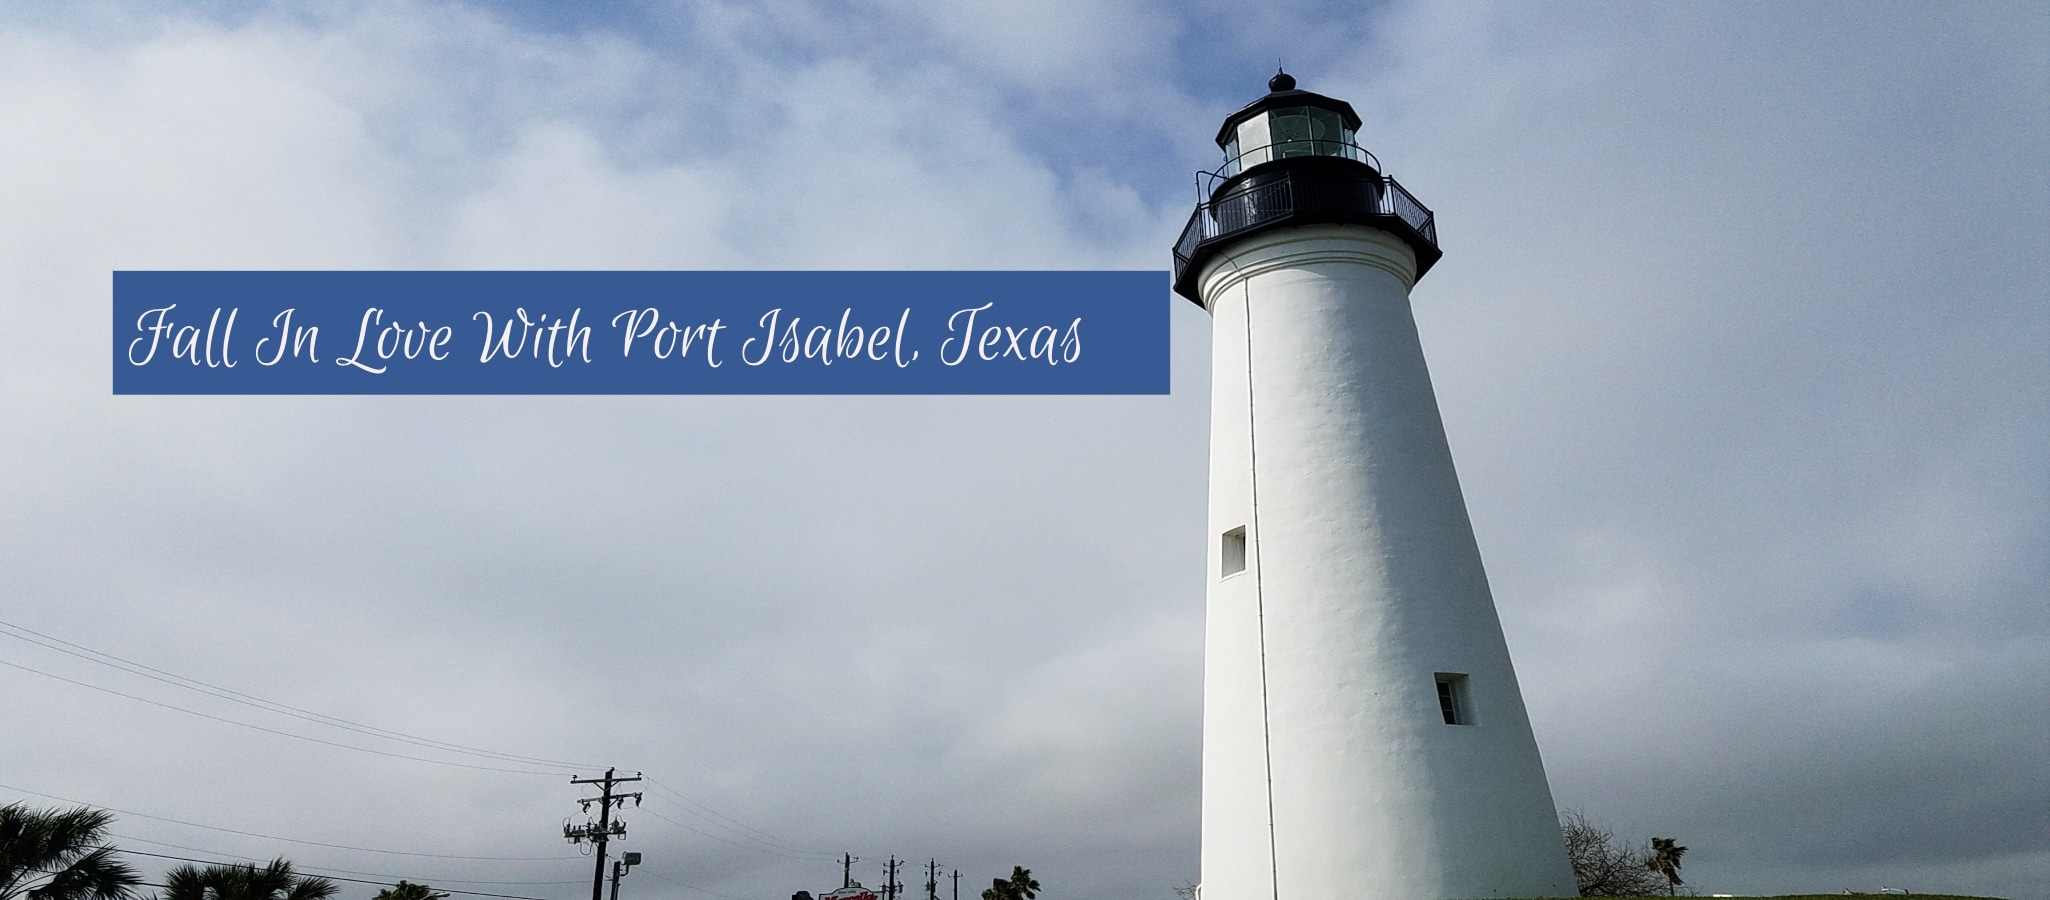 How I Fell In Love With Port Isabel, Texas